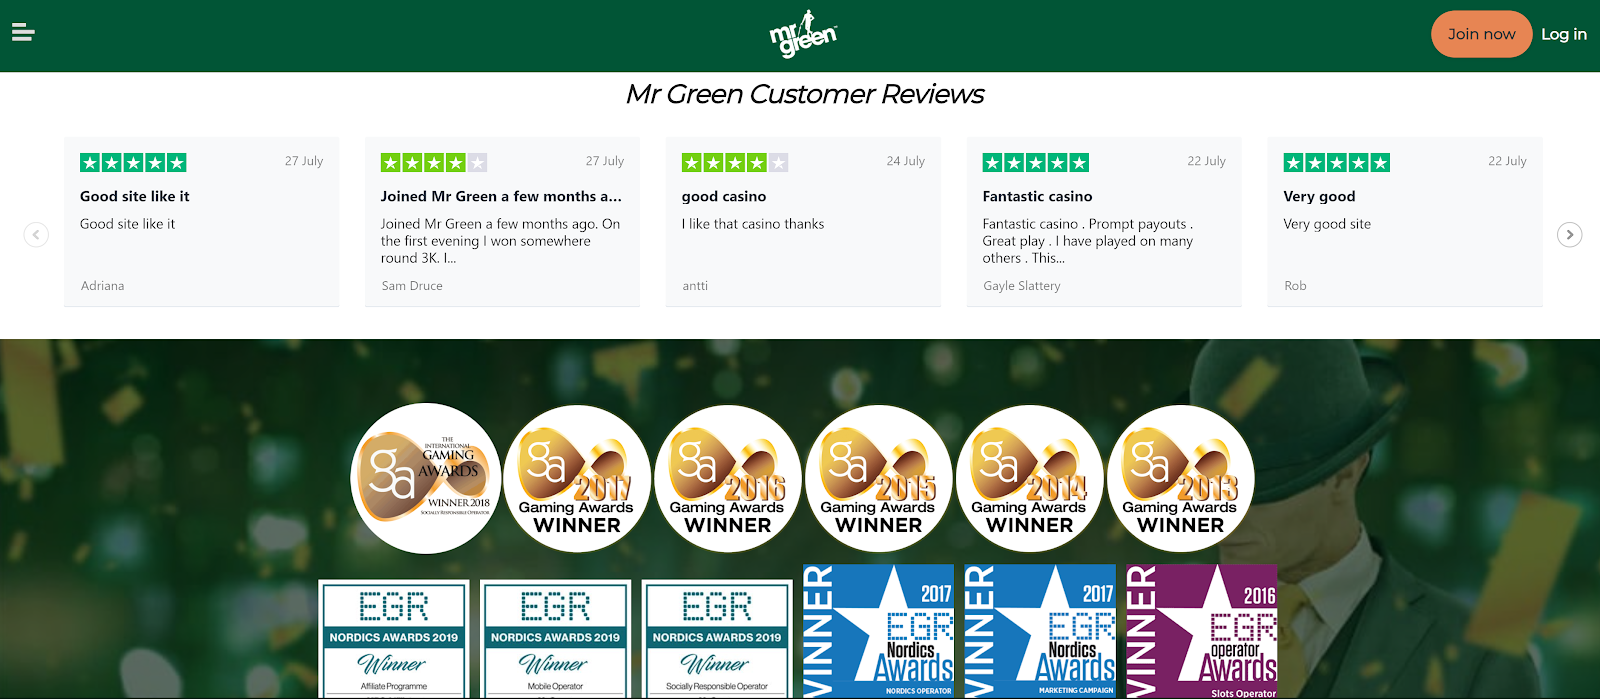 Mr Green Casino is a top-rated slot bonus site